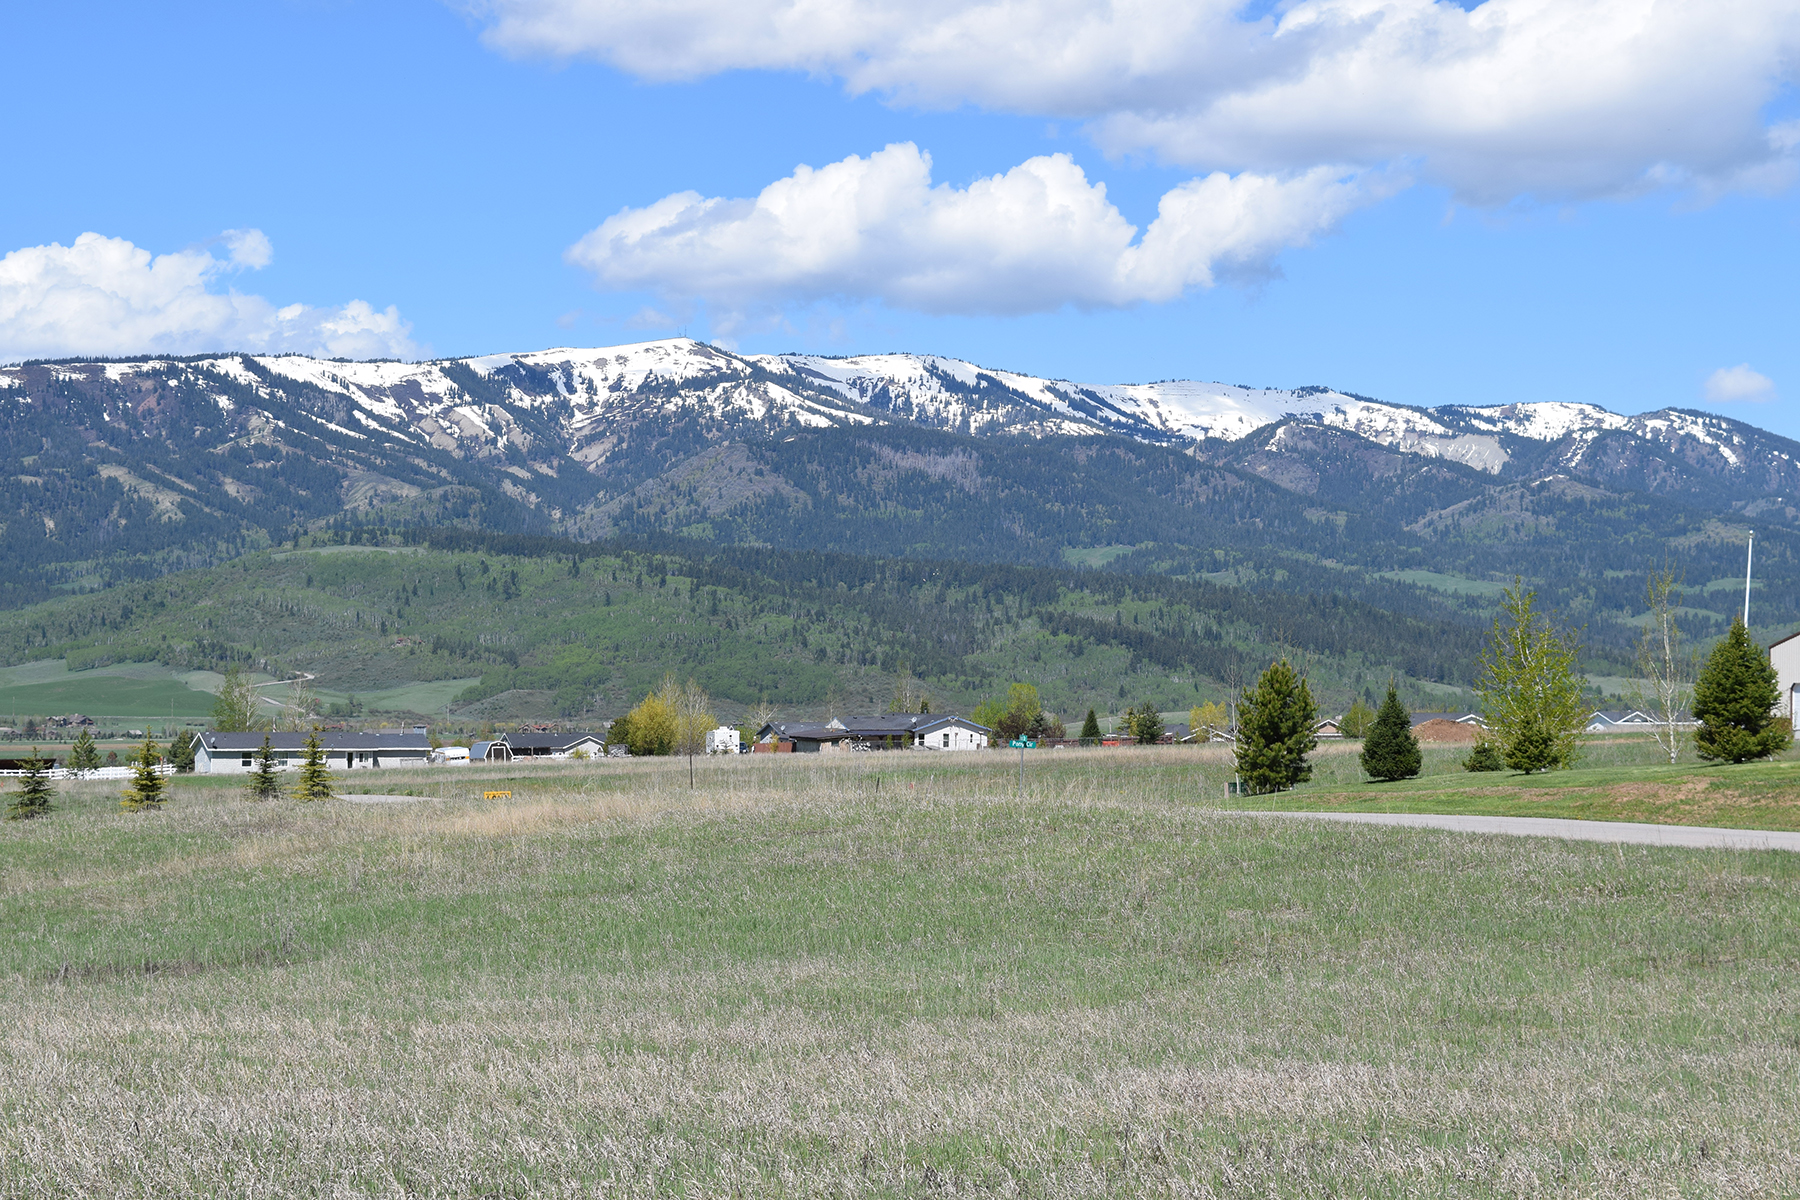 Terreno por un Venta en Nordic Ranch Building Site LOT 162 LARIAT DRIVE, Etna, Wyoming 83118 Estados Unidos